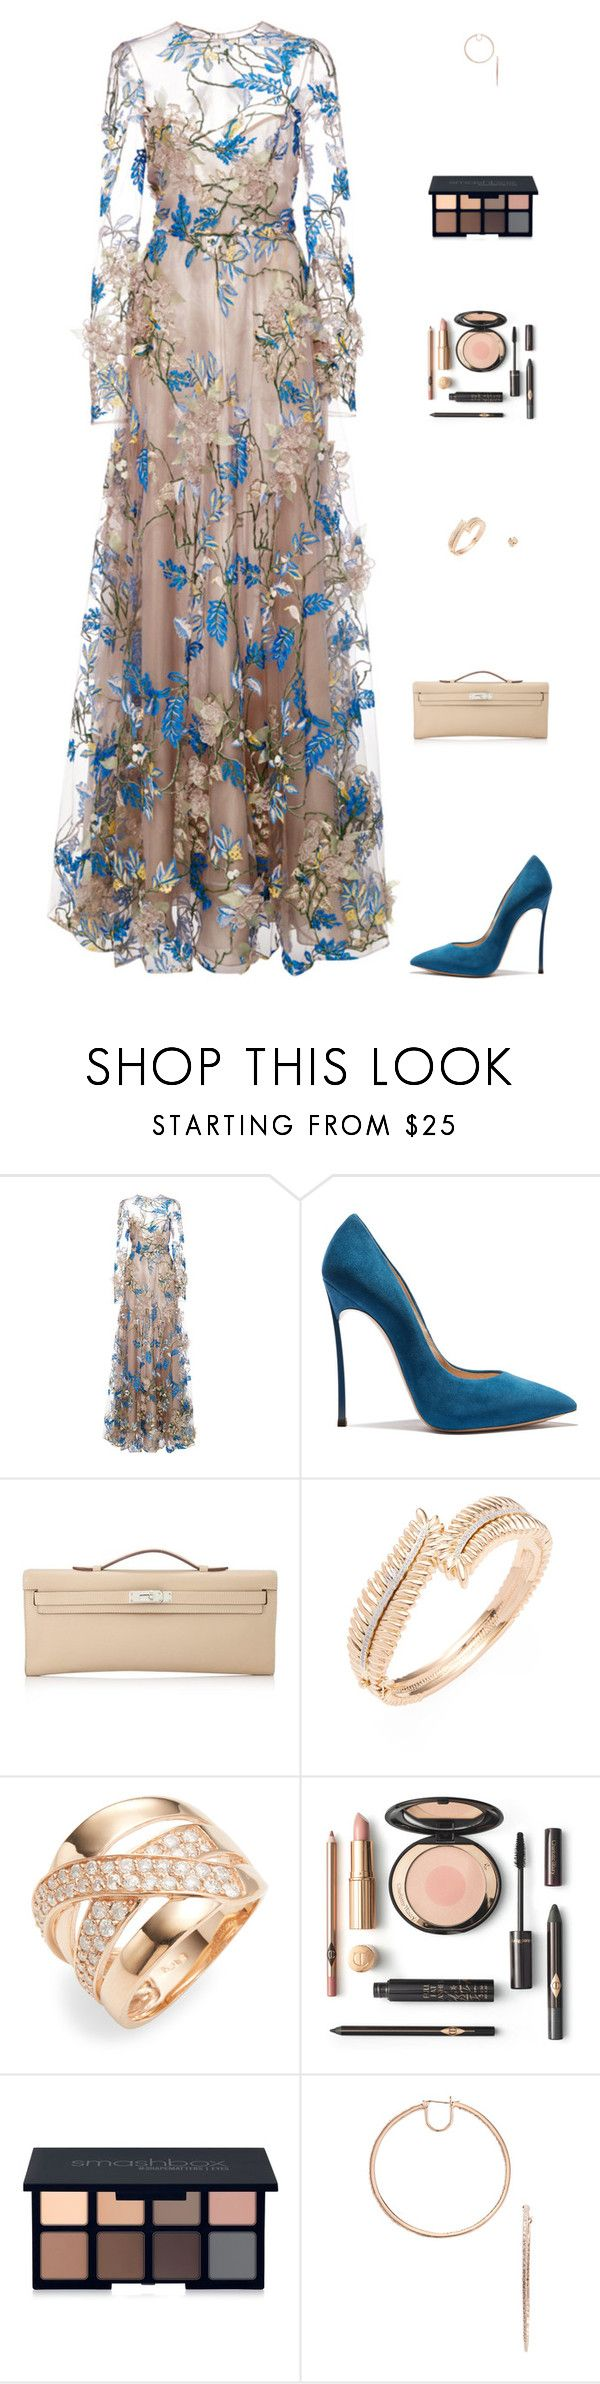 """Untitled #5022"" by mdmsb ❤ liked on Polyvore featuring Hermès, Effy Jewelry and Smashbox"